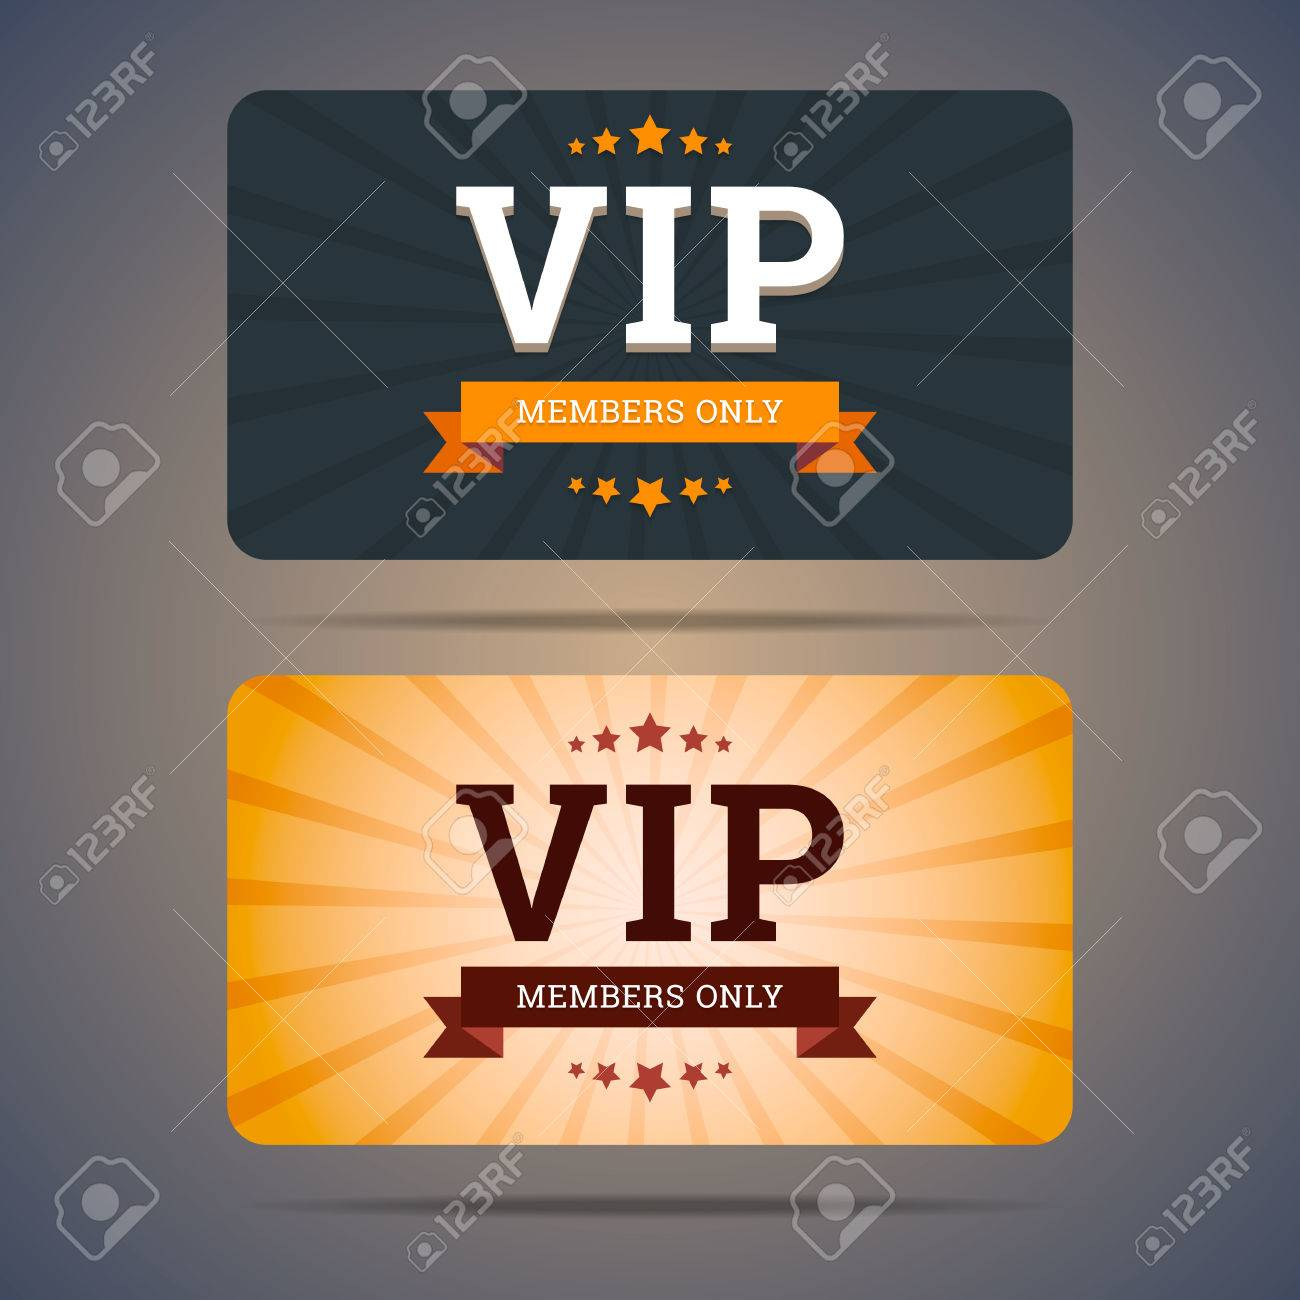 Vip club card design templates in flat style vector illustration vector vip club card design templates in flat style vector illustration maxwellsz